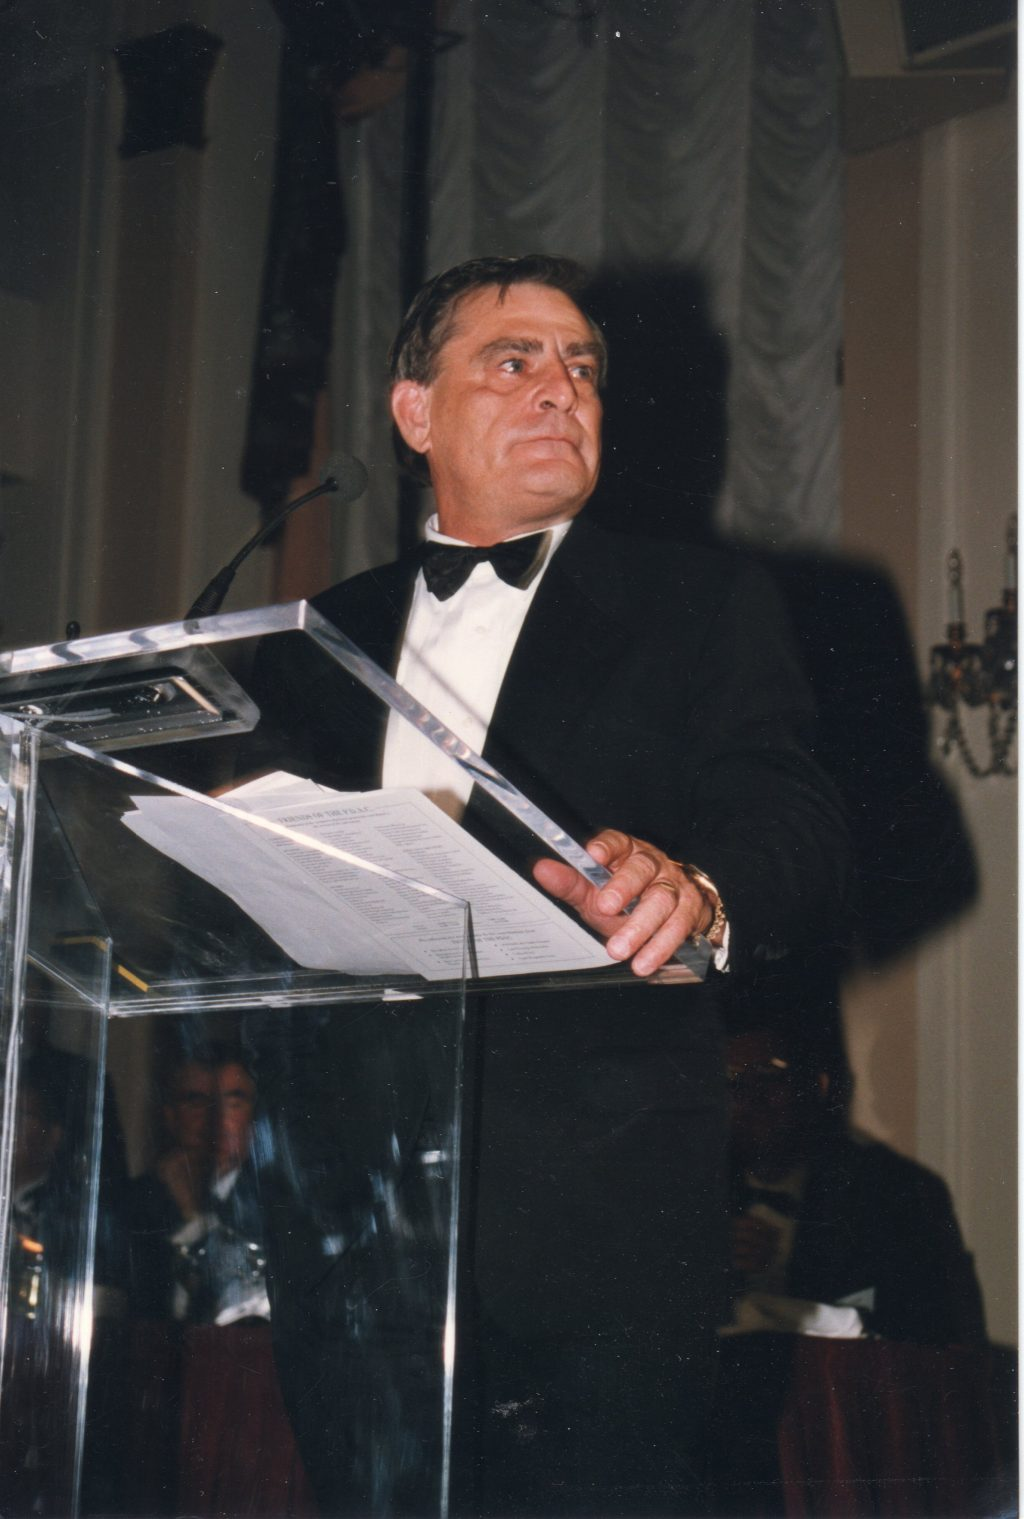 John Felderhof giving his acceptance speech after receiving the Prospector of the Year Award from the Prospectors & Developers Association of Canada in March 1997. Photo by The Northern Miner.